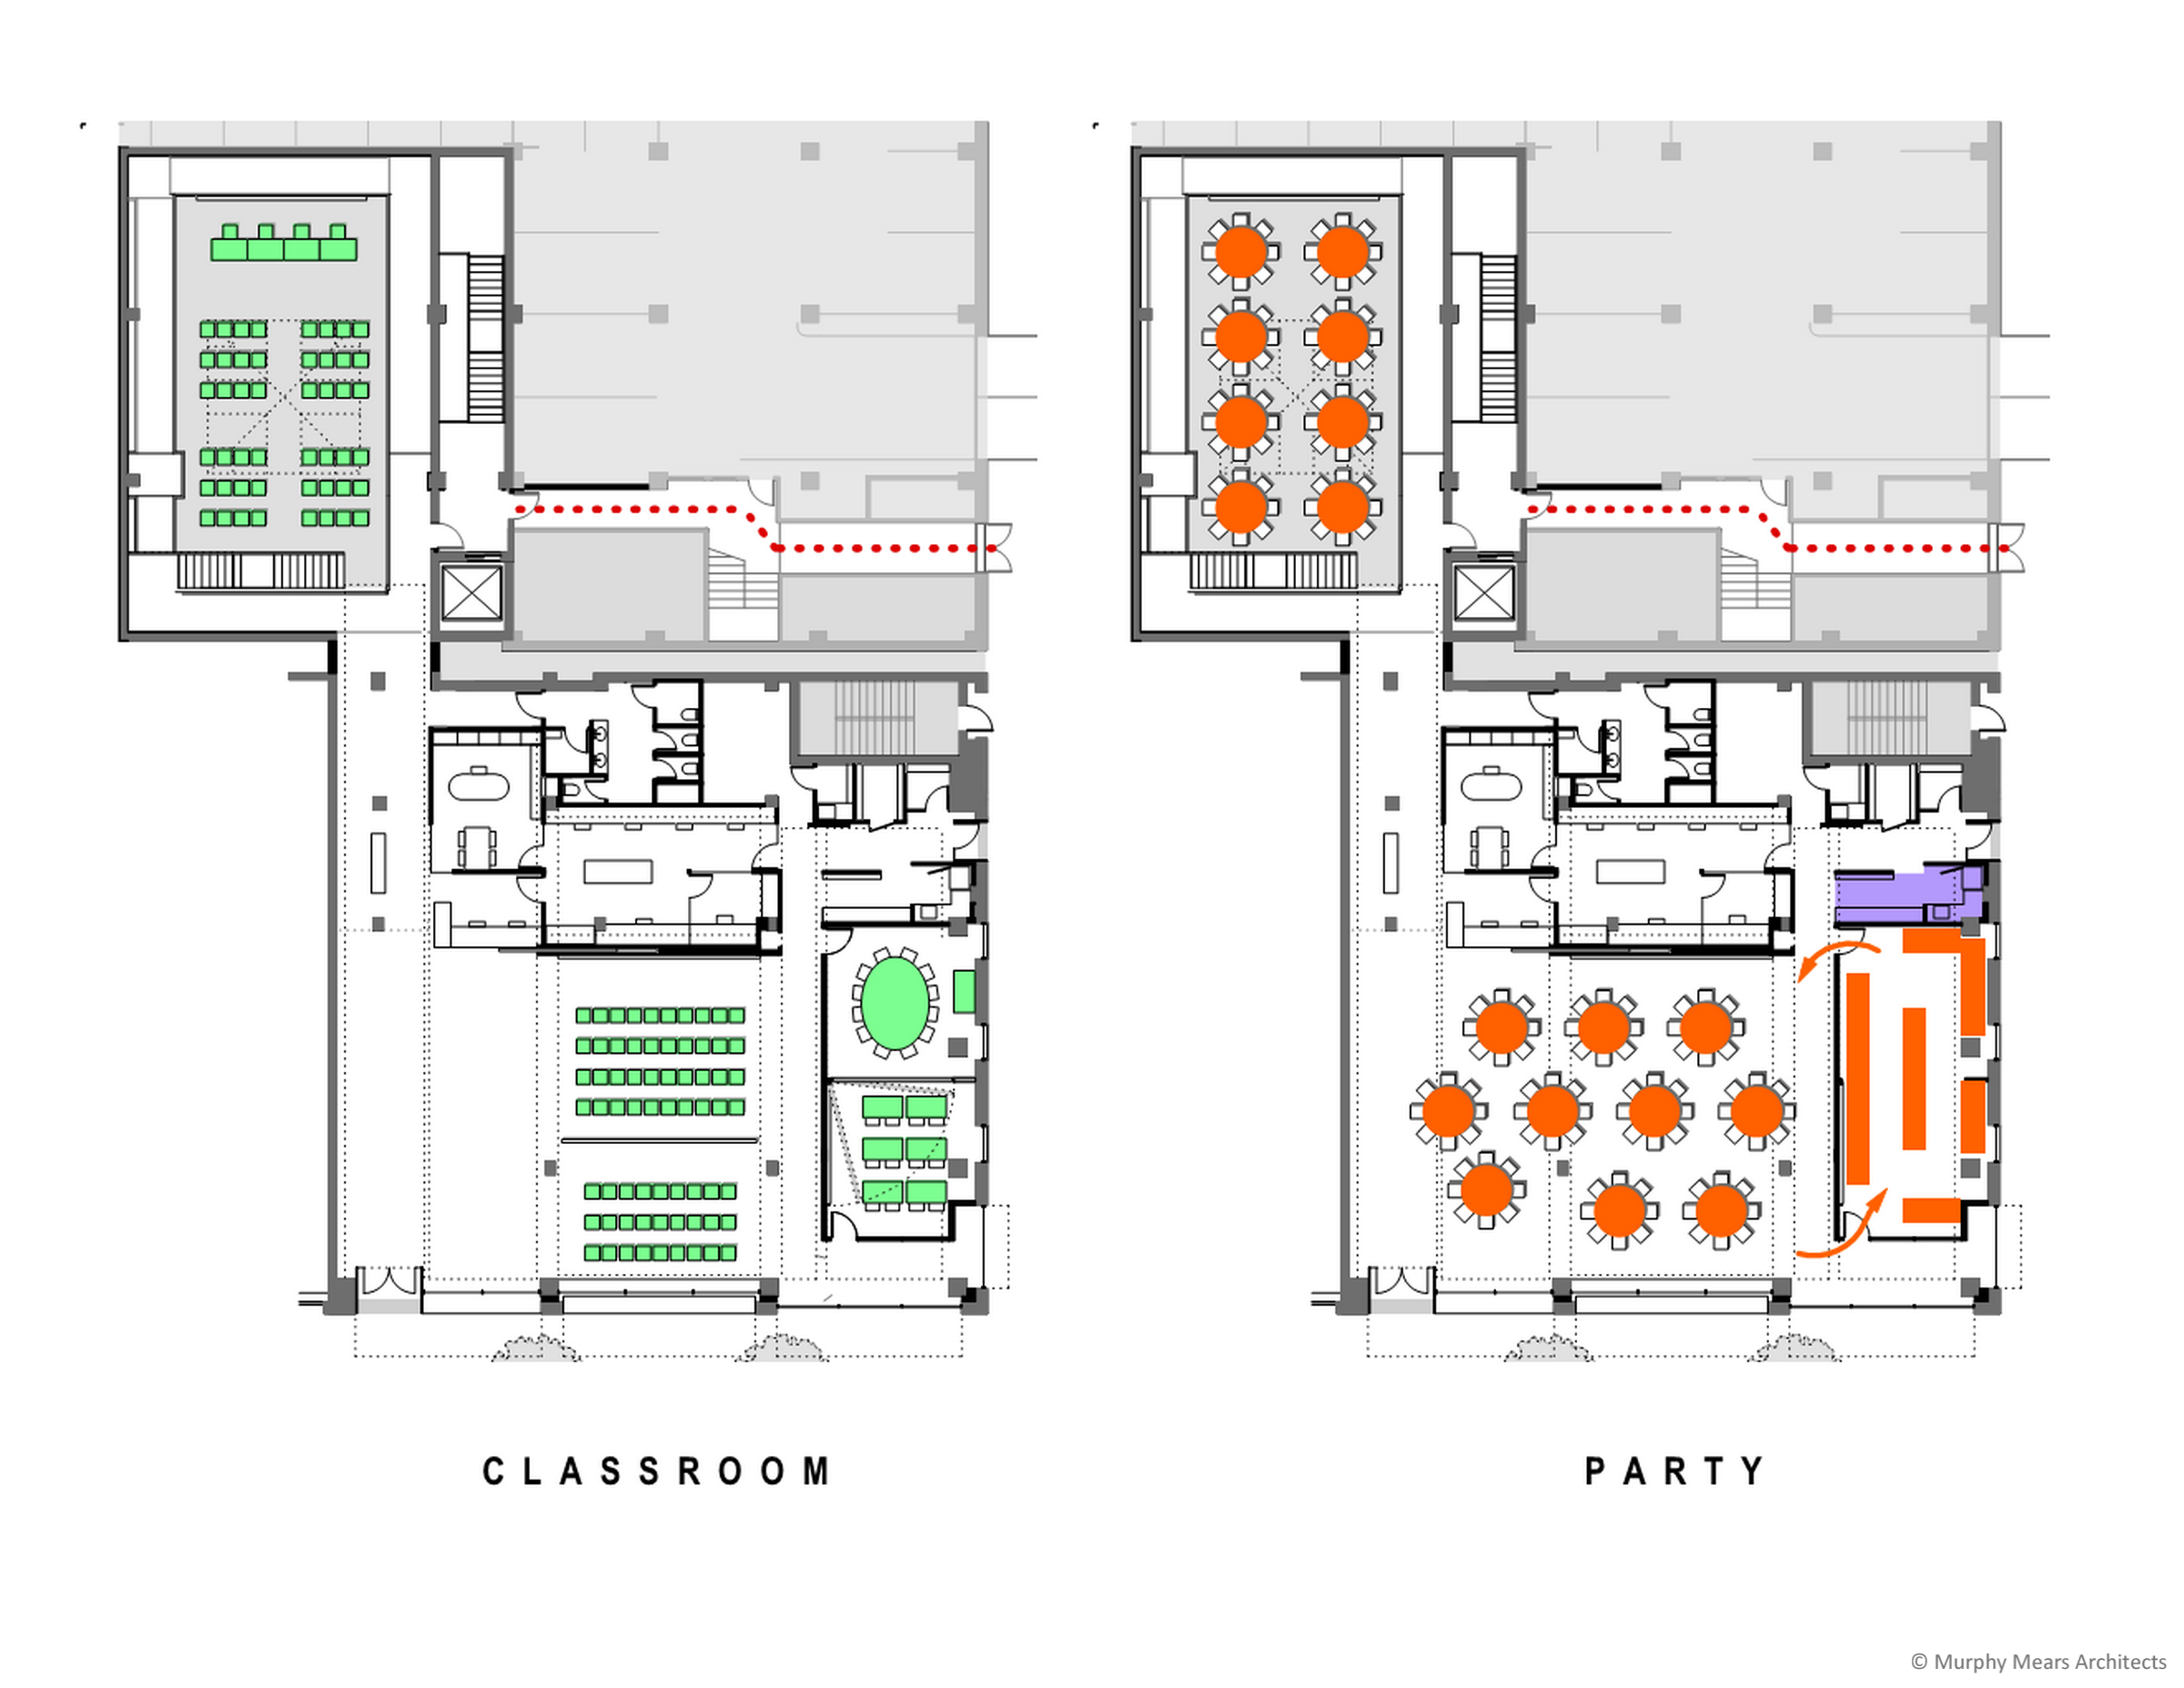 Architecture Center Houston - Competition Diagram - Flexible Use ---> Classrooms and Event Space.